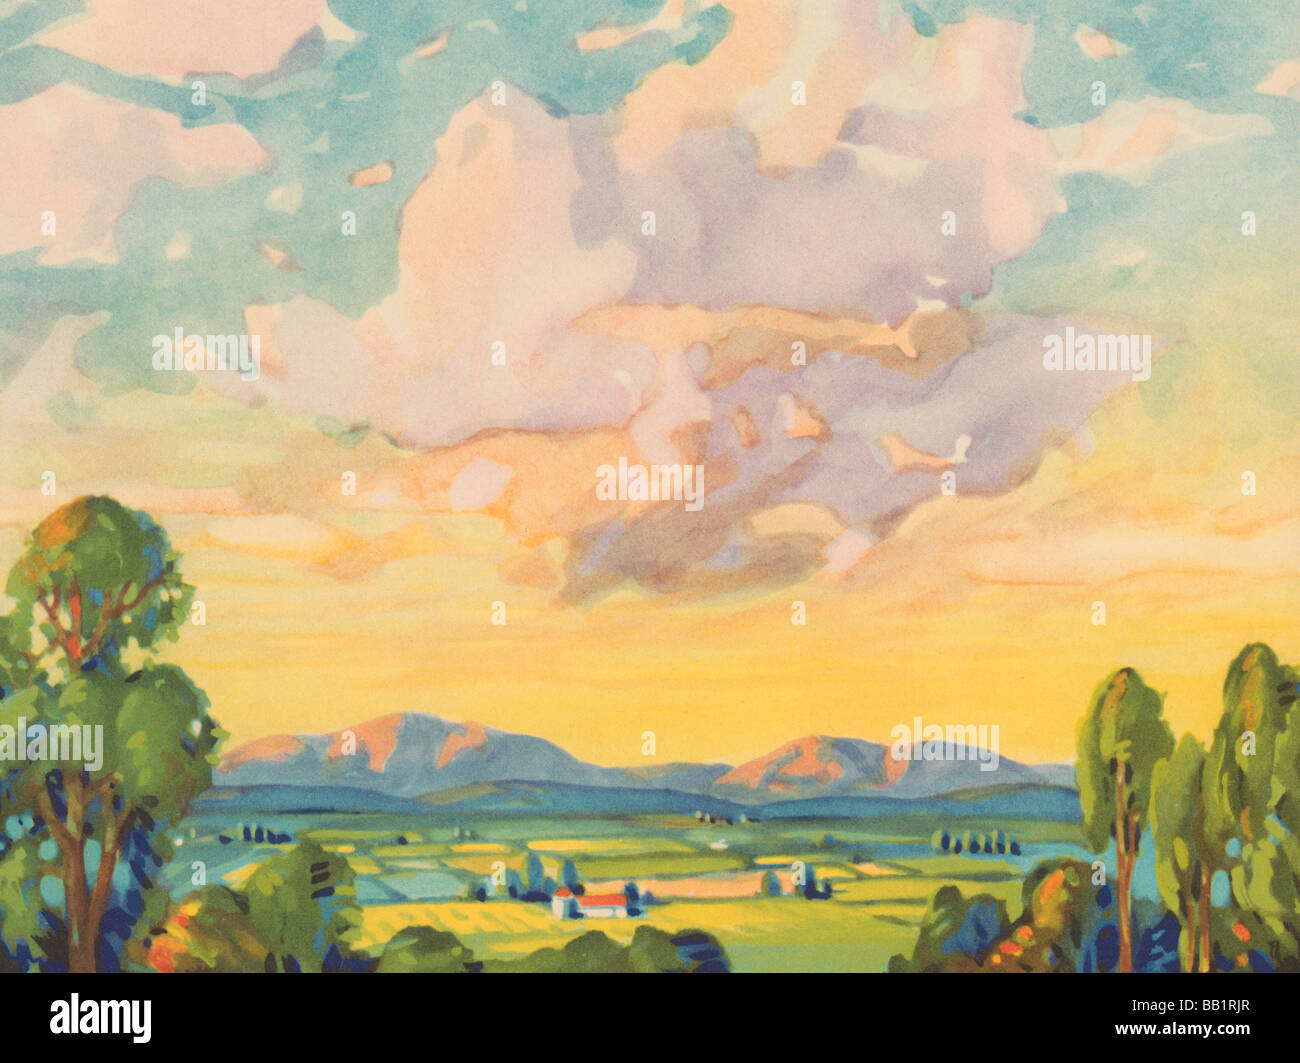 Landscape and Summer Clouds - Stock Image